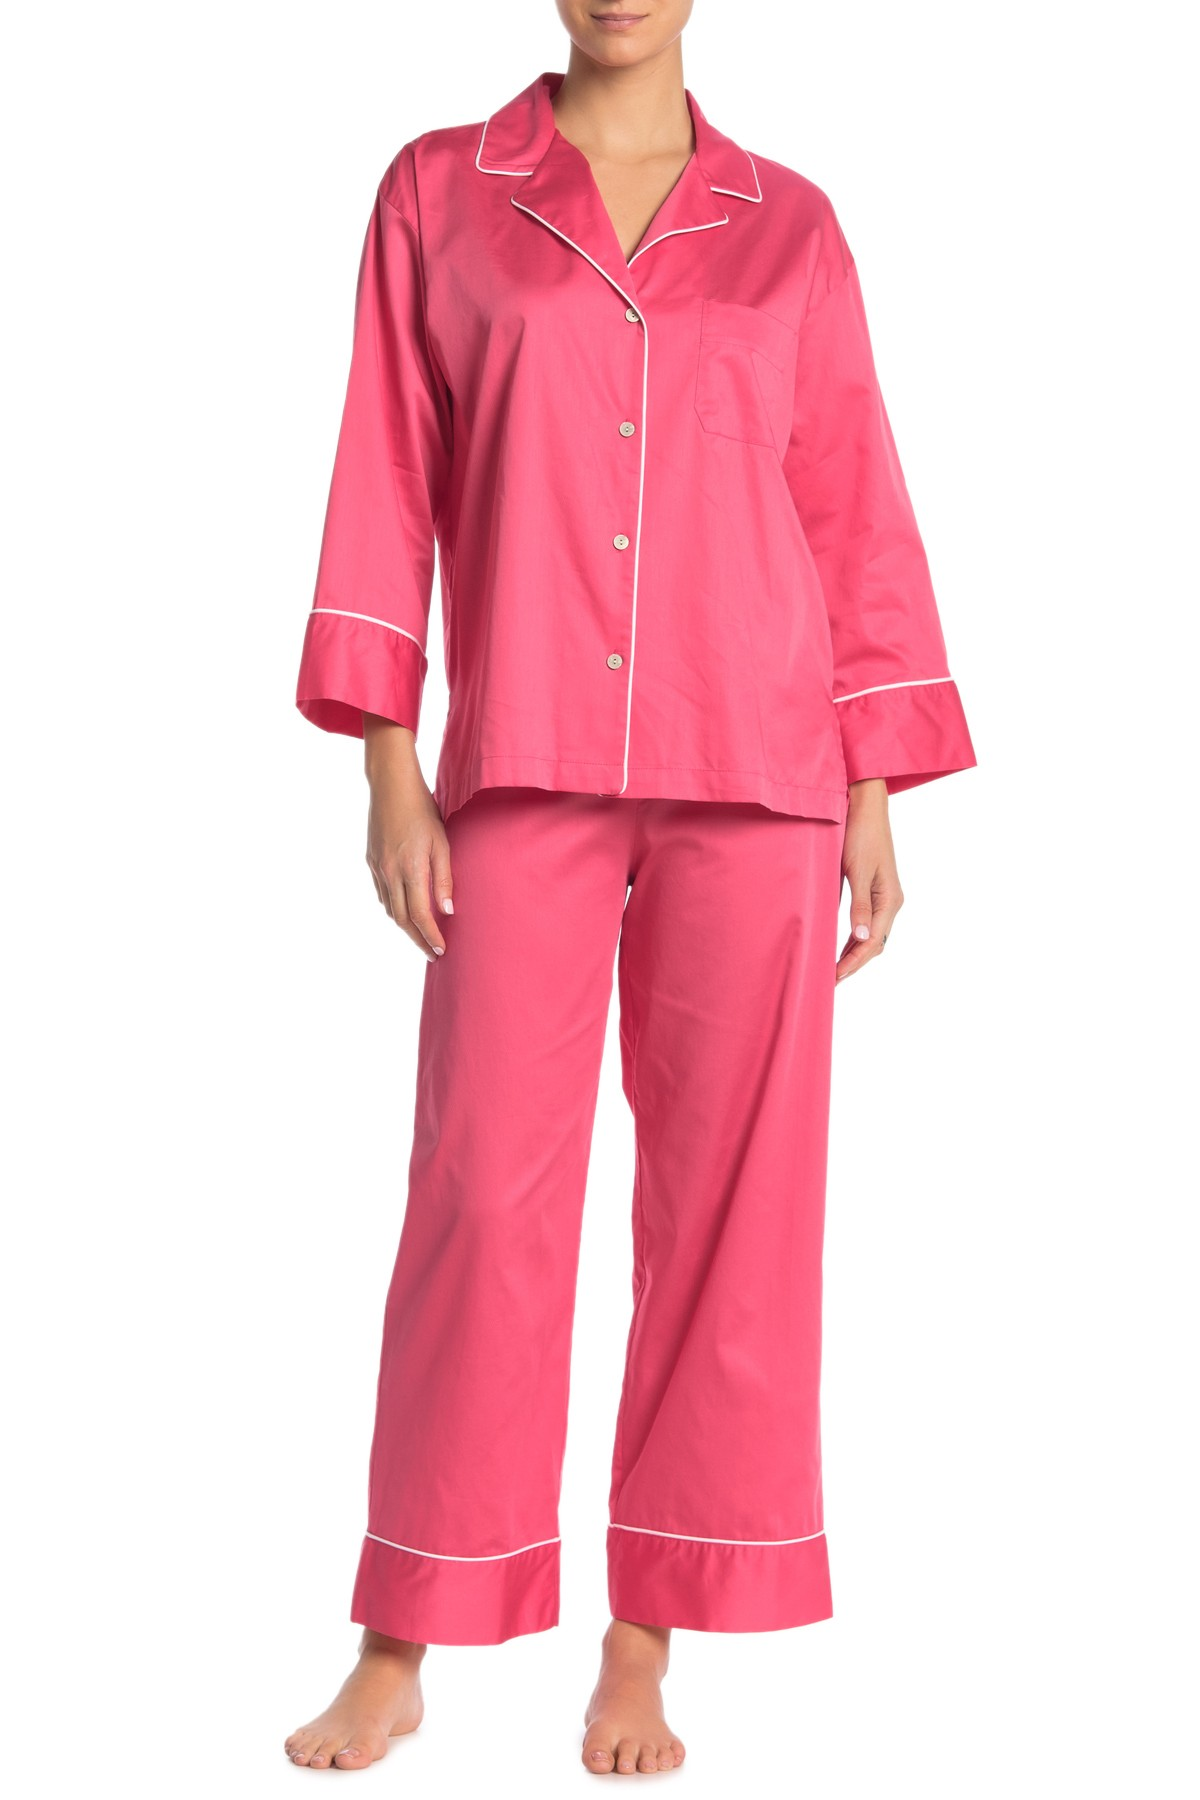 Natori sateen cotton pajama set